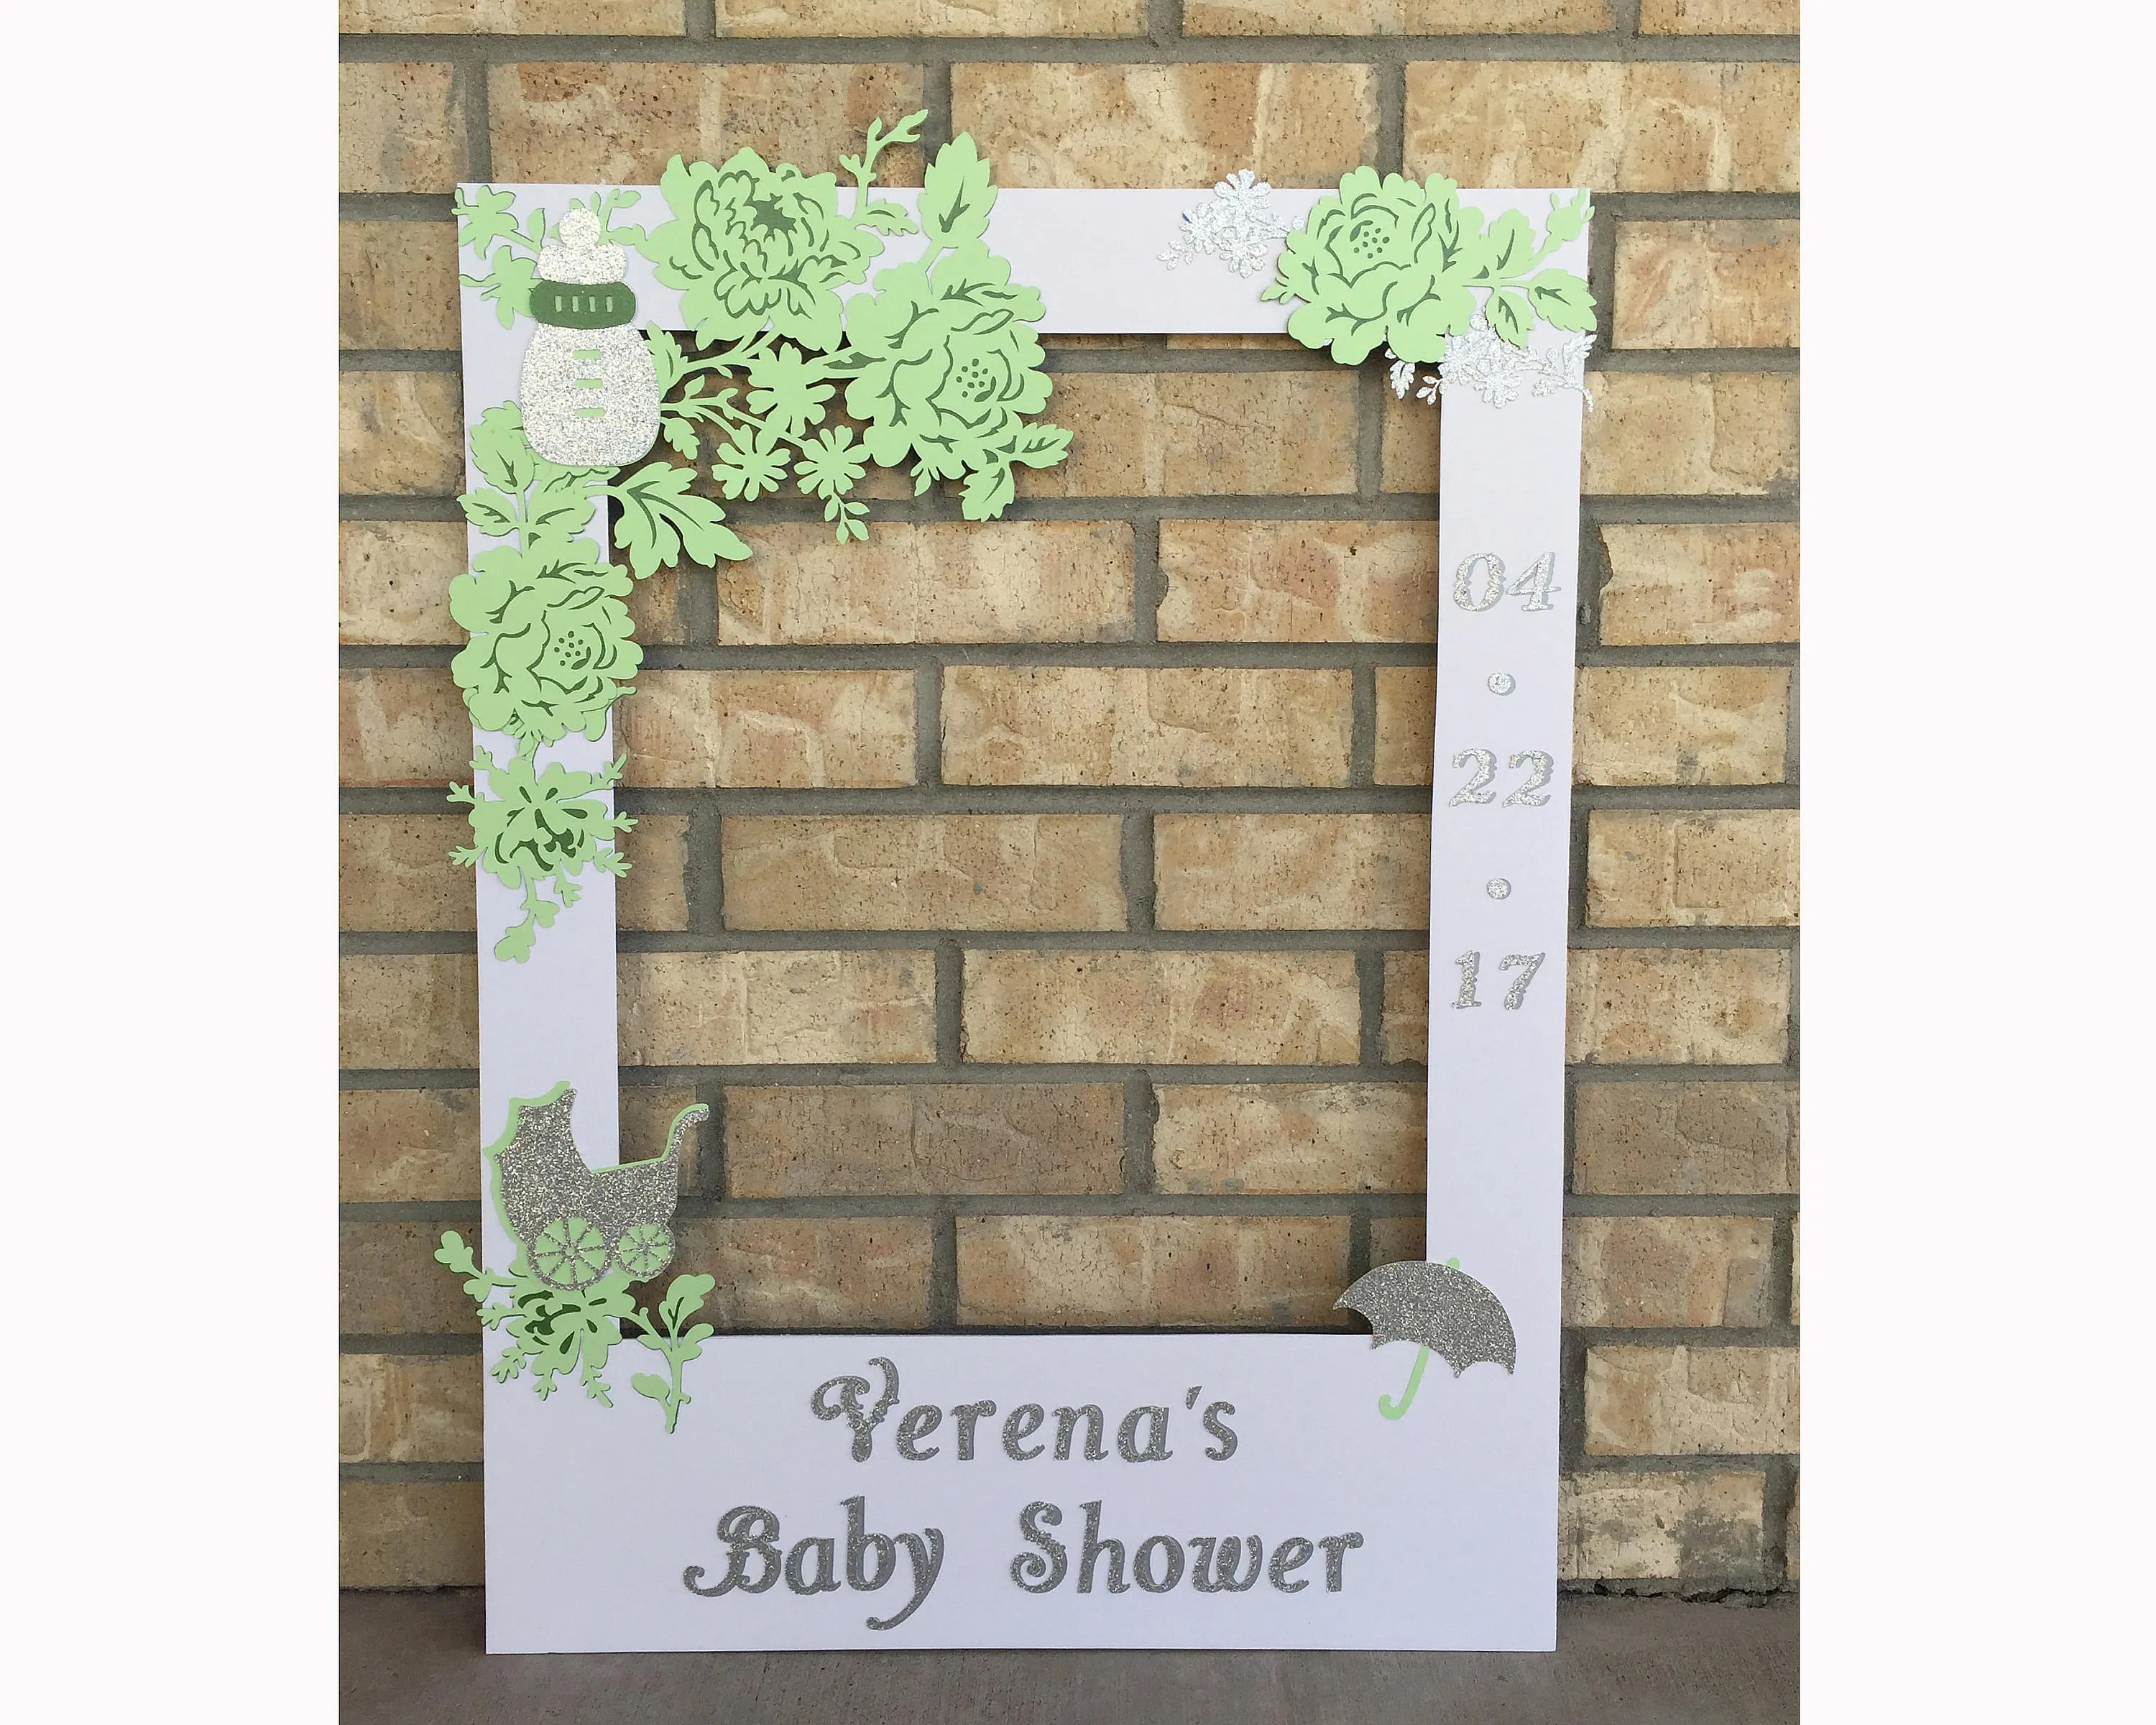 Photobooth Maison Gender Neutral Baby Shower Photo Booth Frame Prop With Mint Flowers And Glitter Silver Custom Colors Custom Message Physical Product